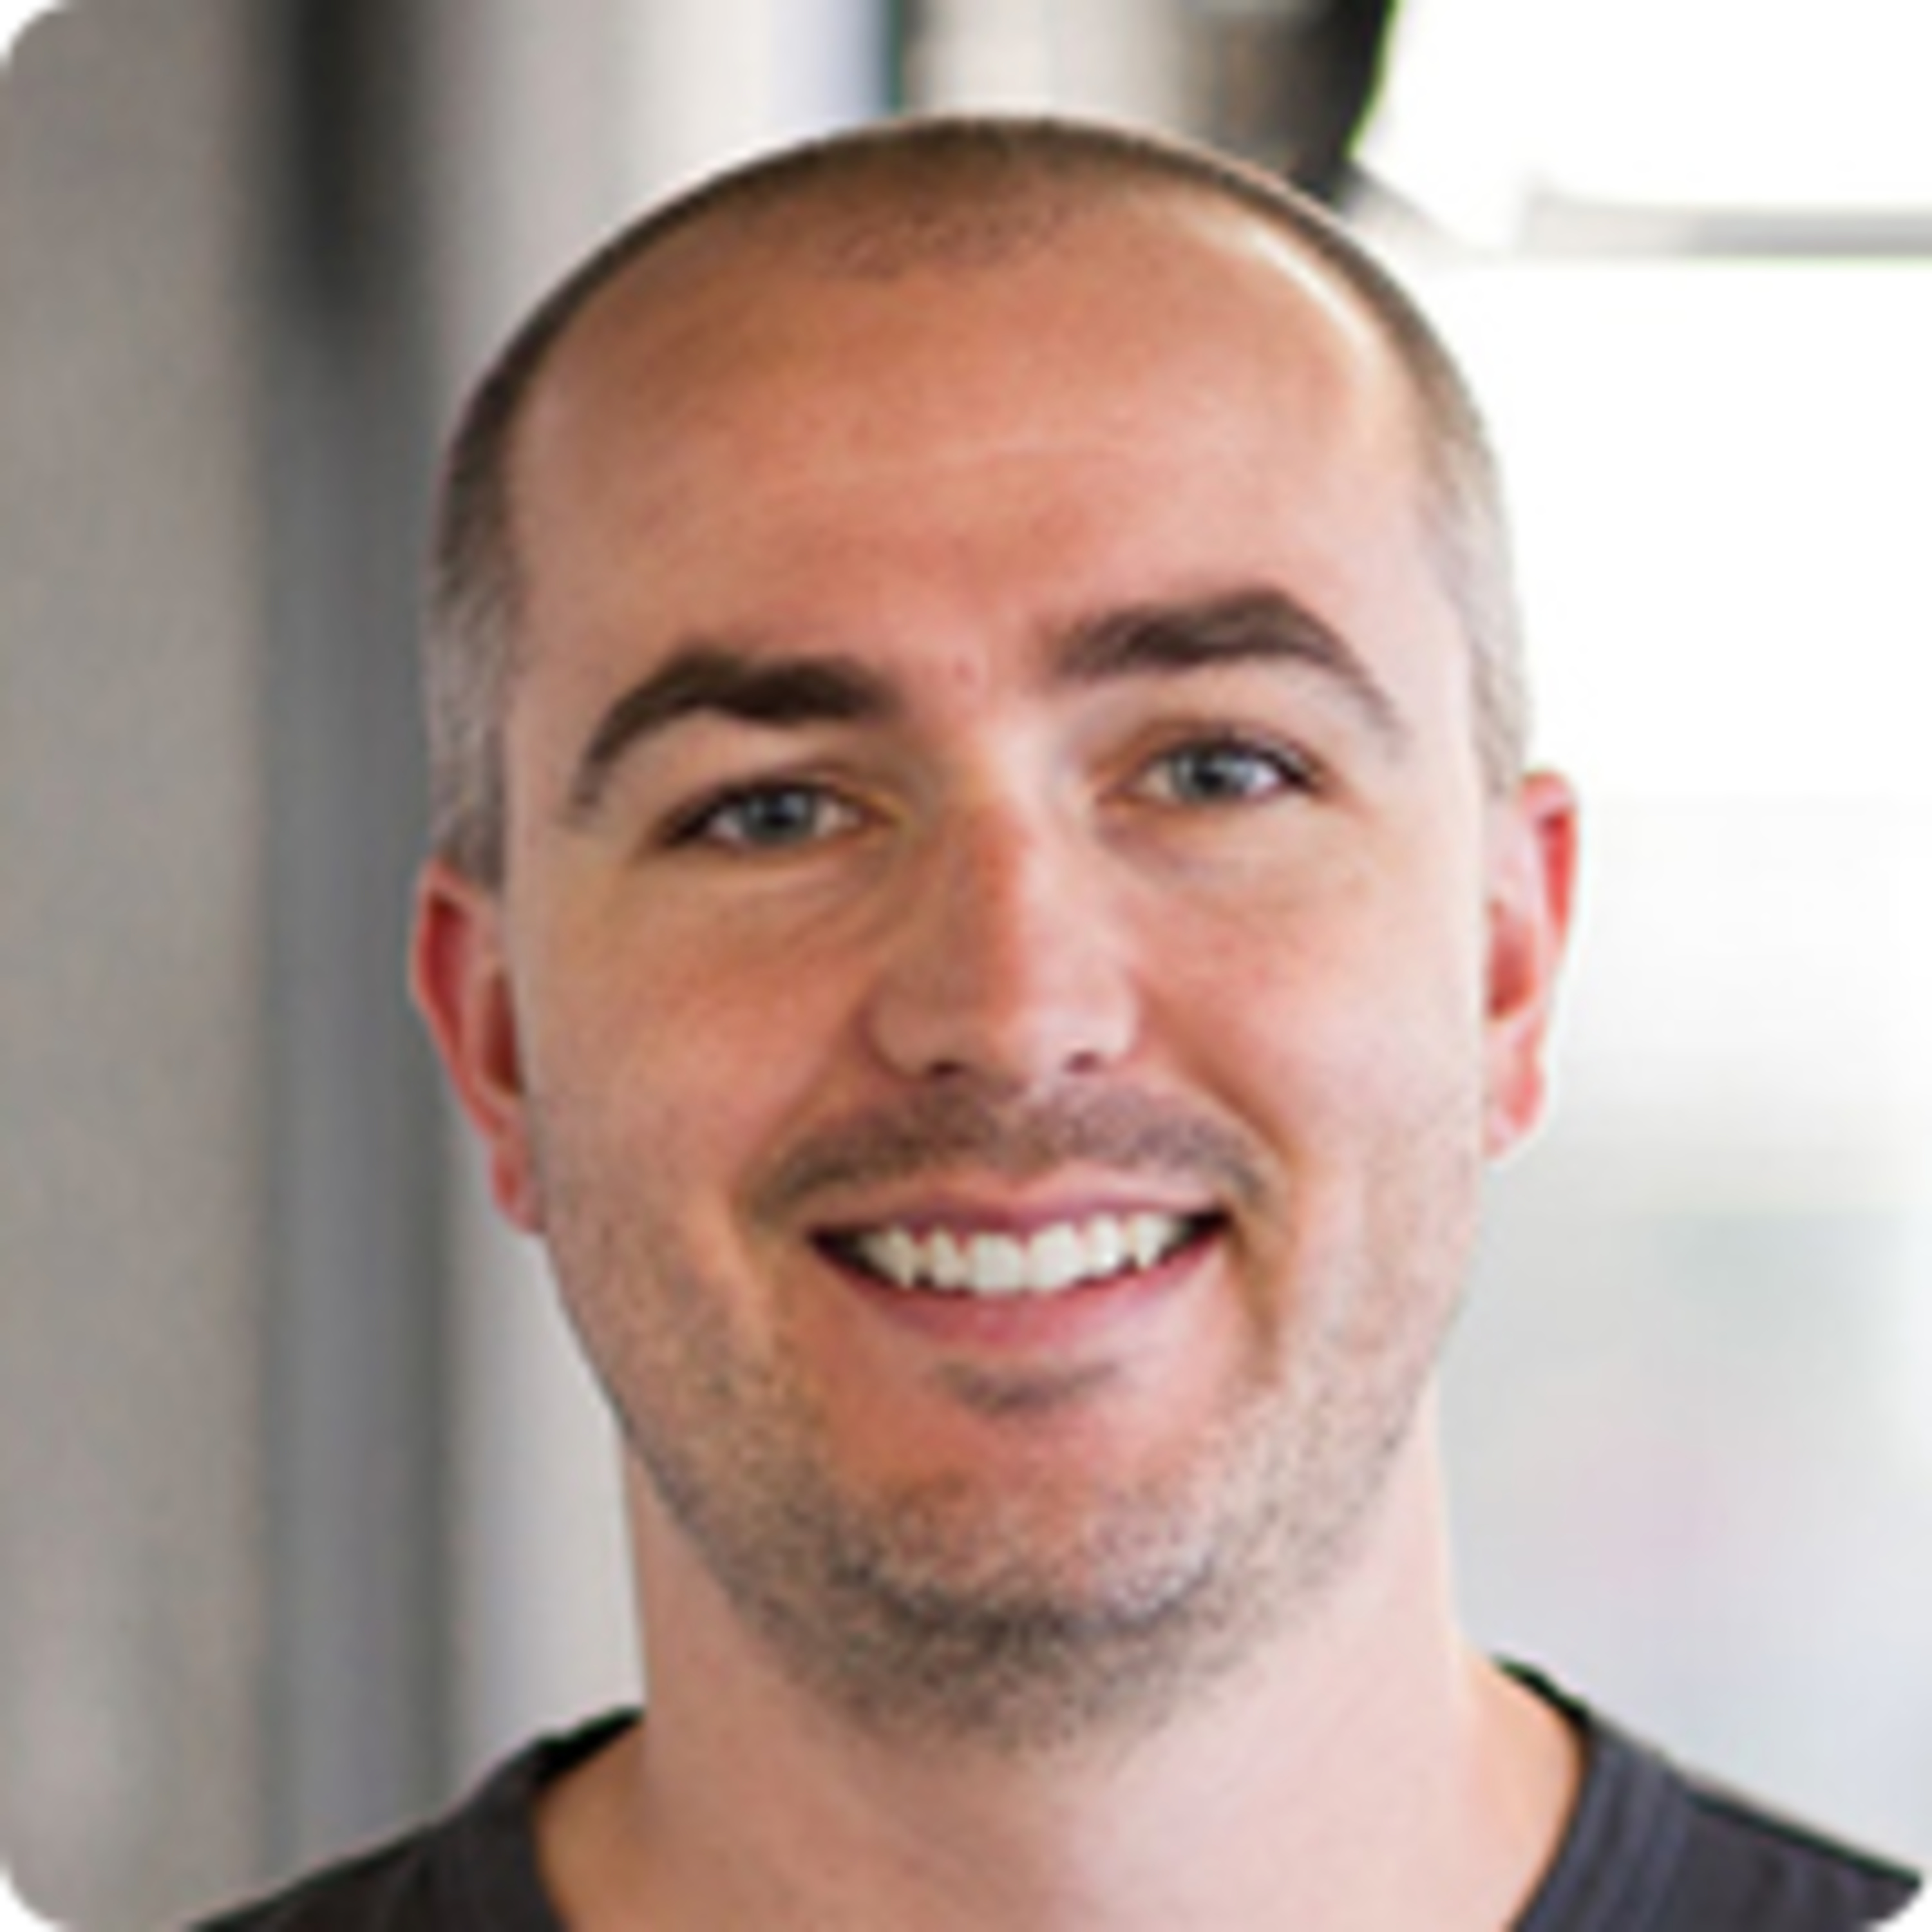 $107.6 million raised - the role of a CTO in the fundraising process by Adrian Druzgalski, co-founder and CTO at Radius Intelligence.